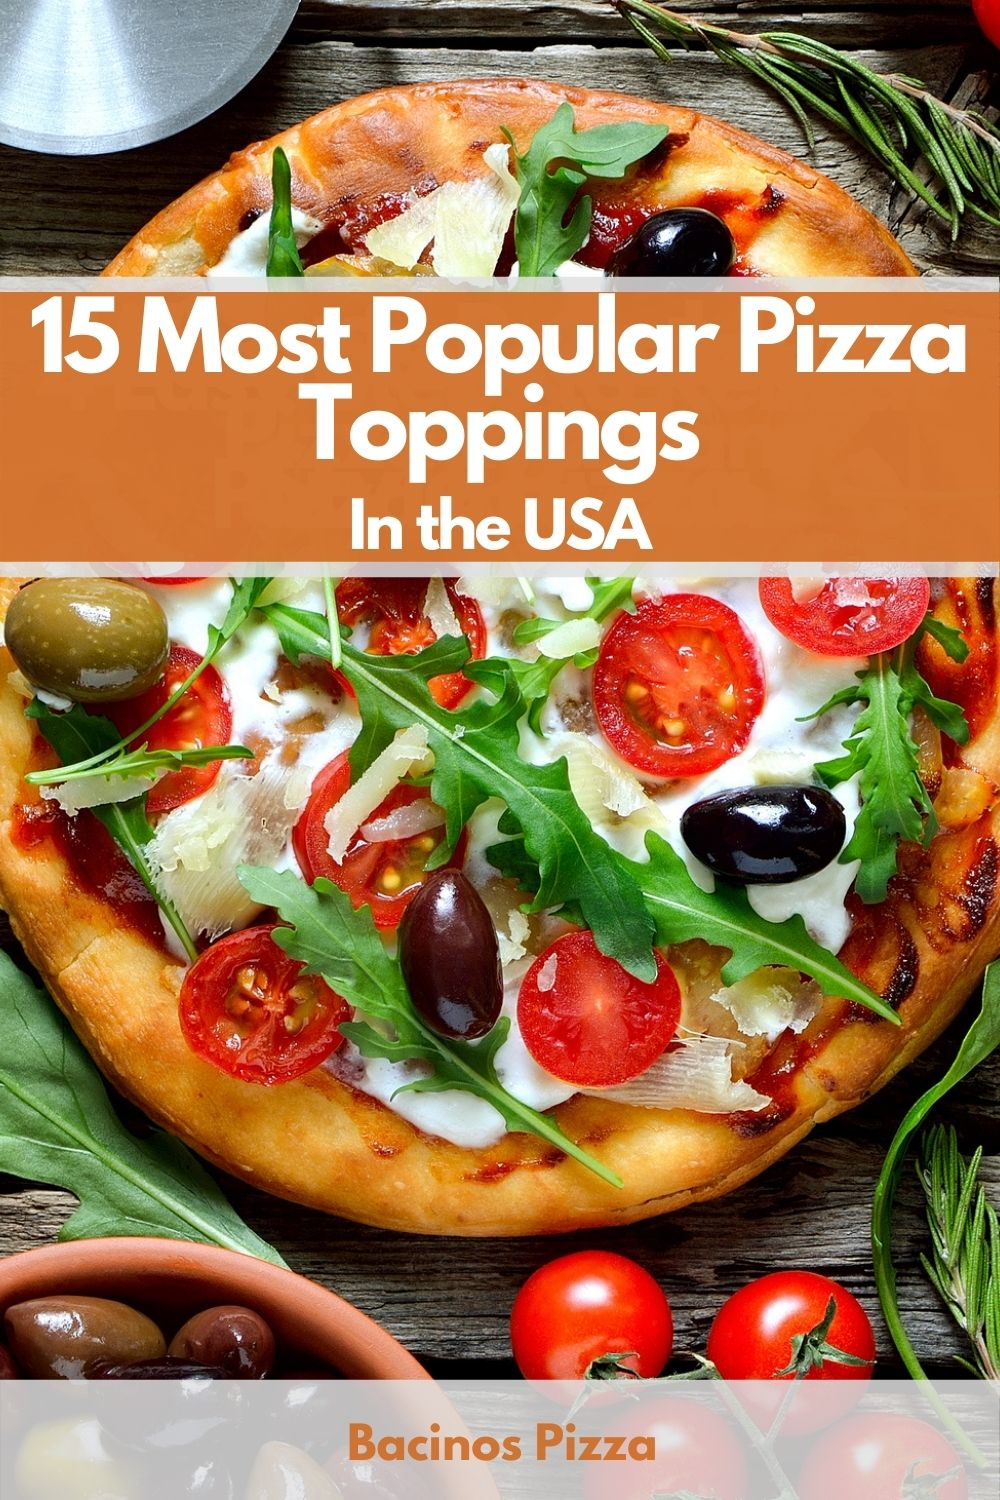 15 Most Popular Pizza Toppings In the USA pin 2